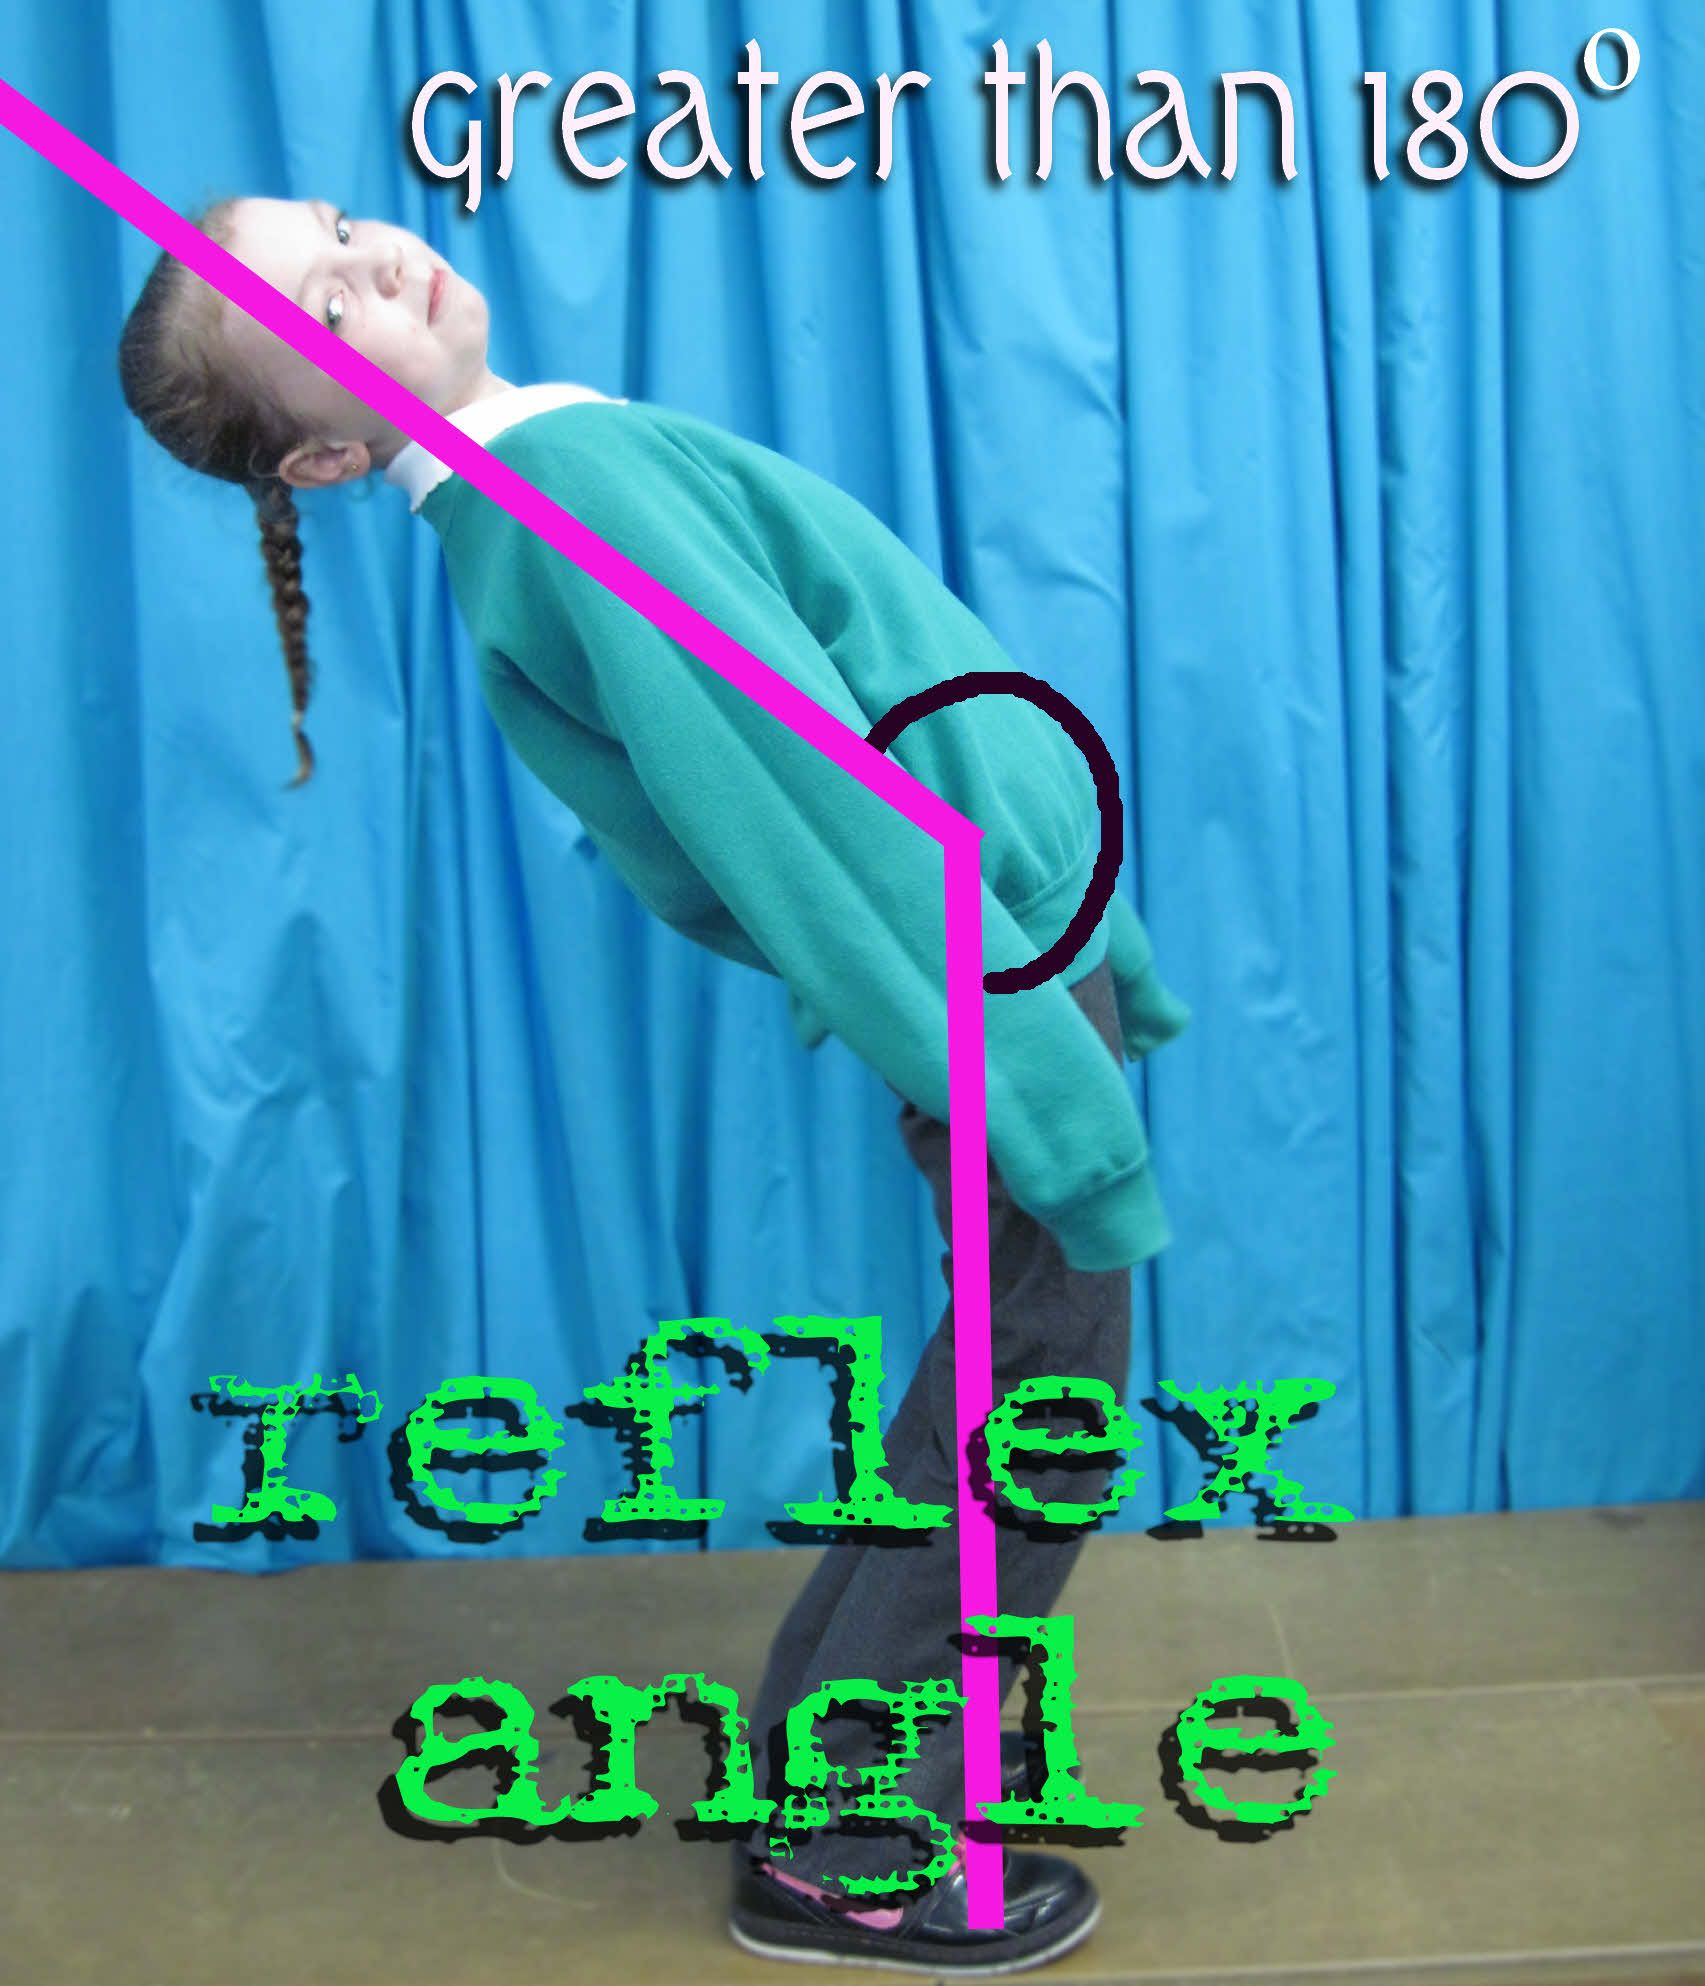 Reflex angles occur along with acute, right and obtuse